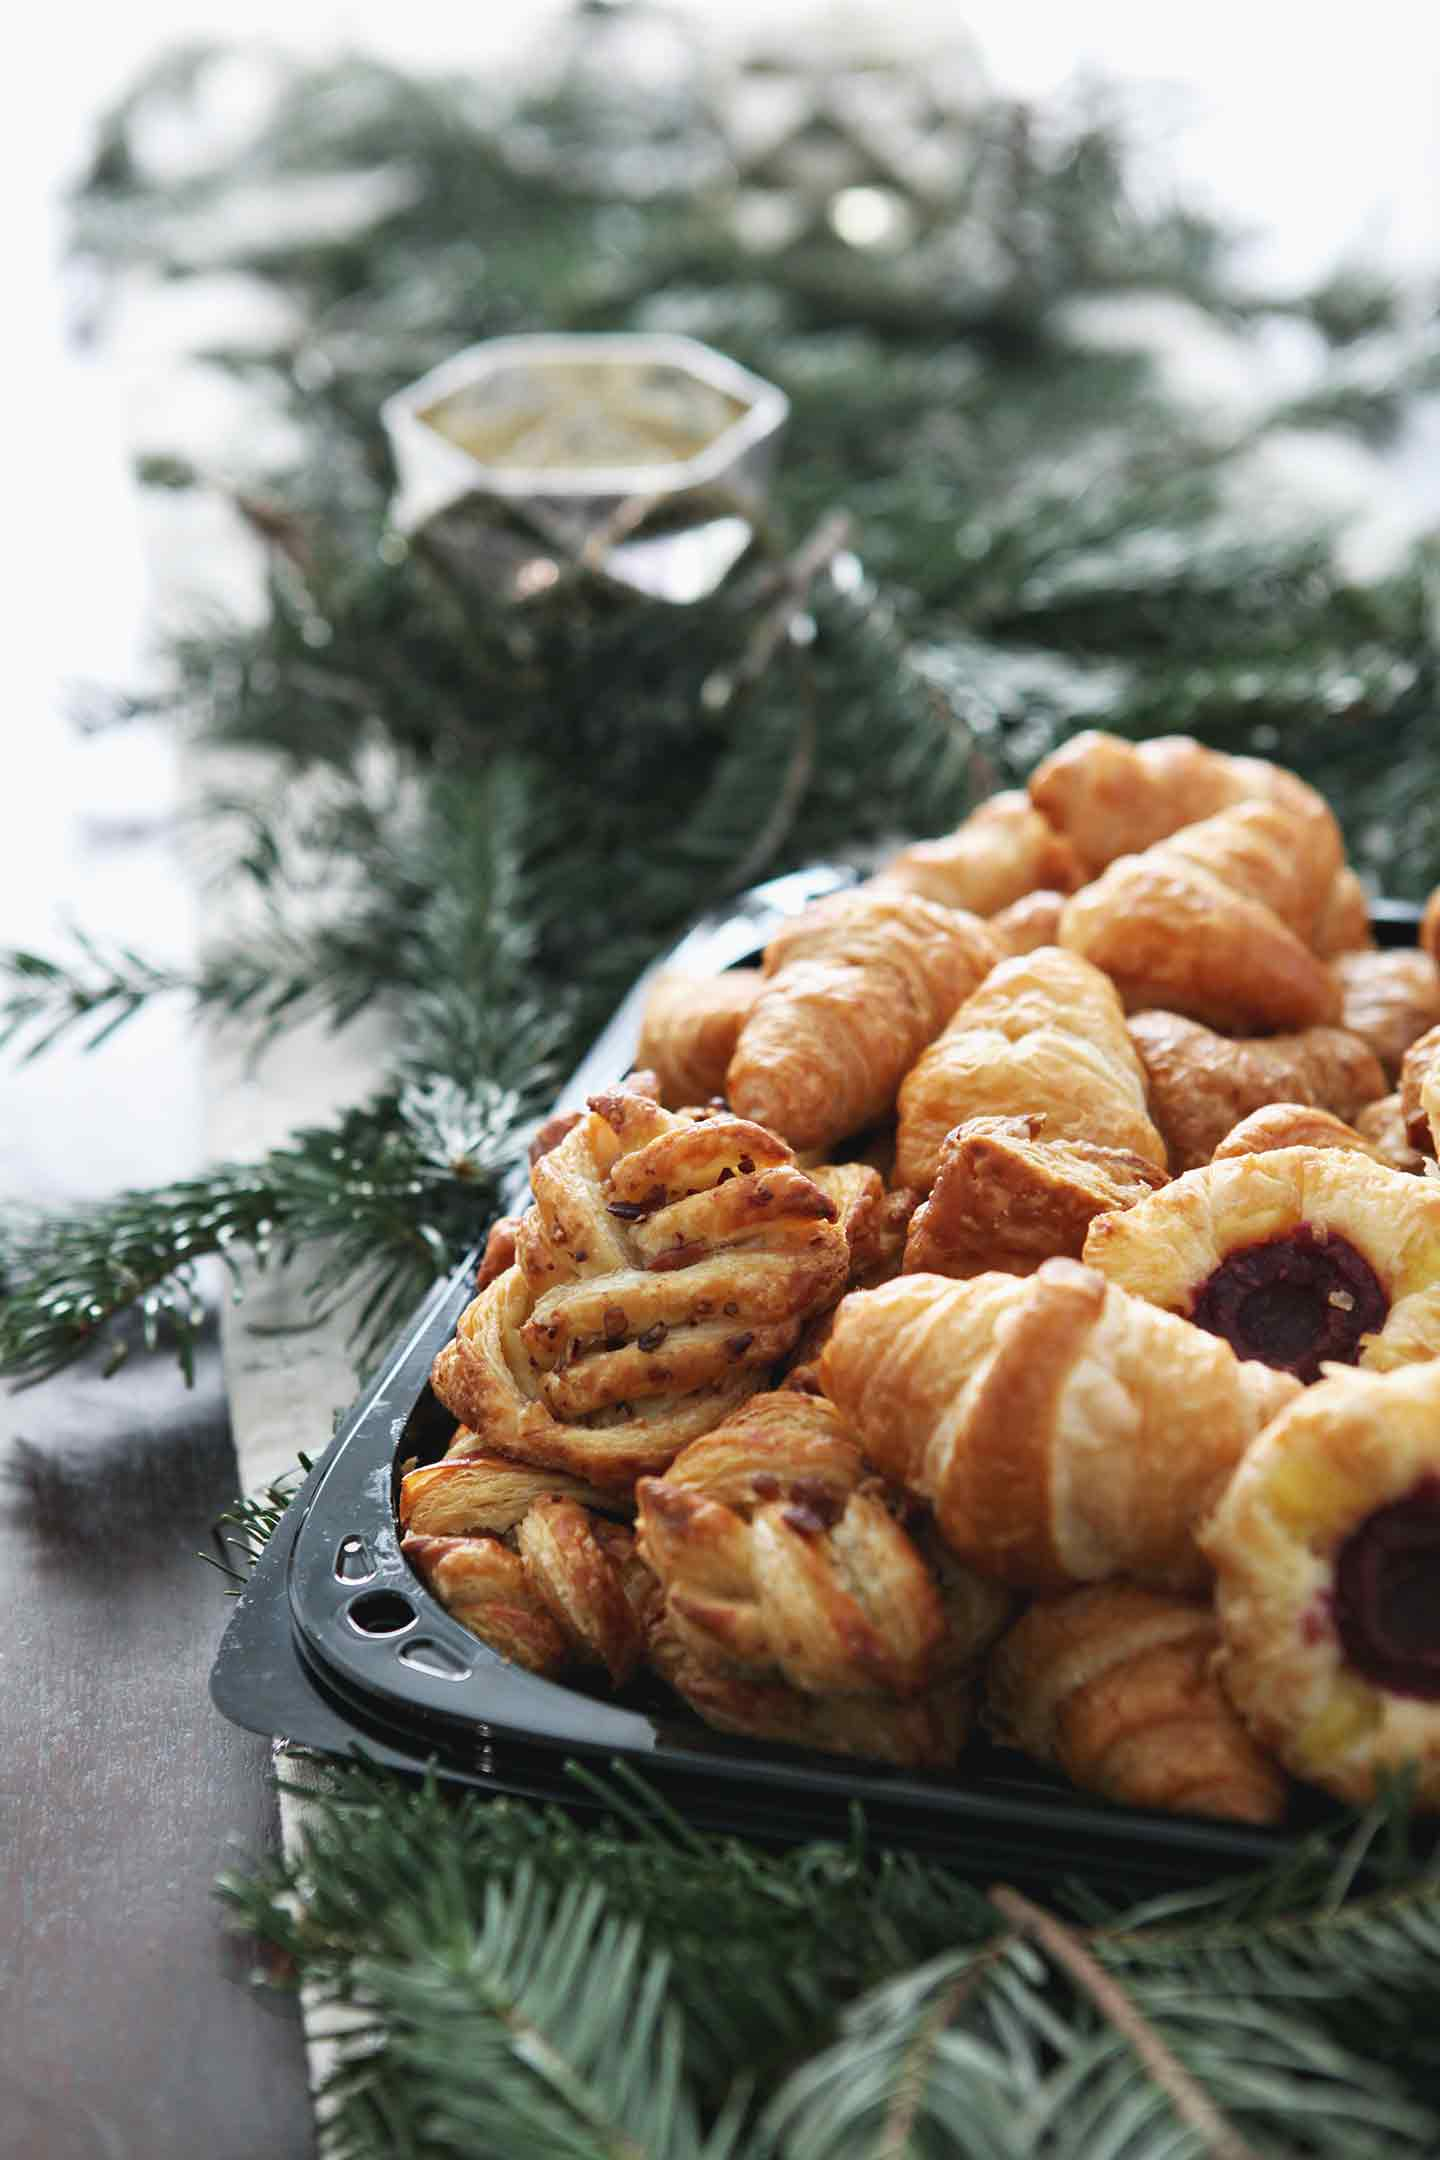 Pastries are shown in their packaging from Sprouts before being moved to a serving platter